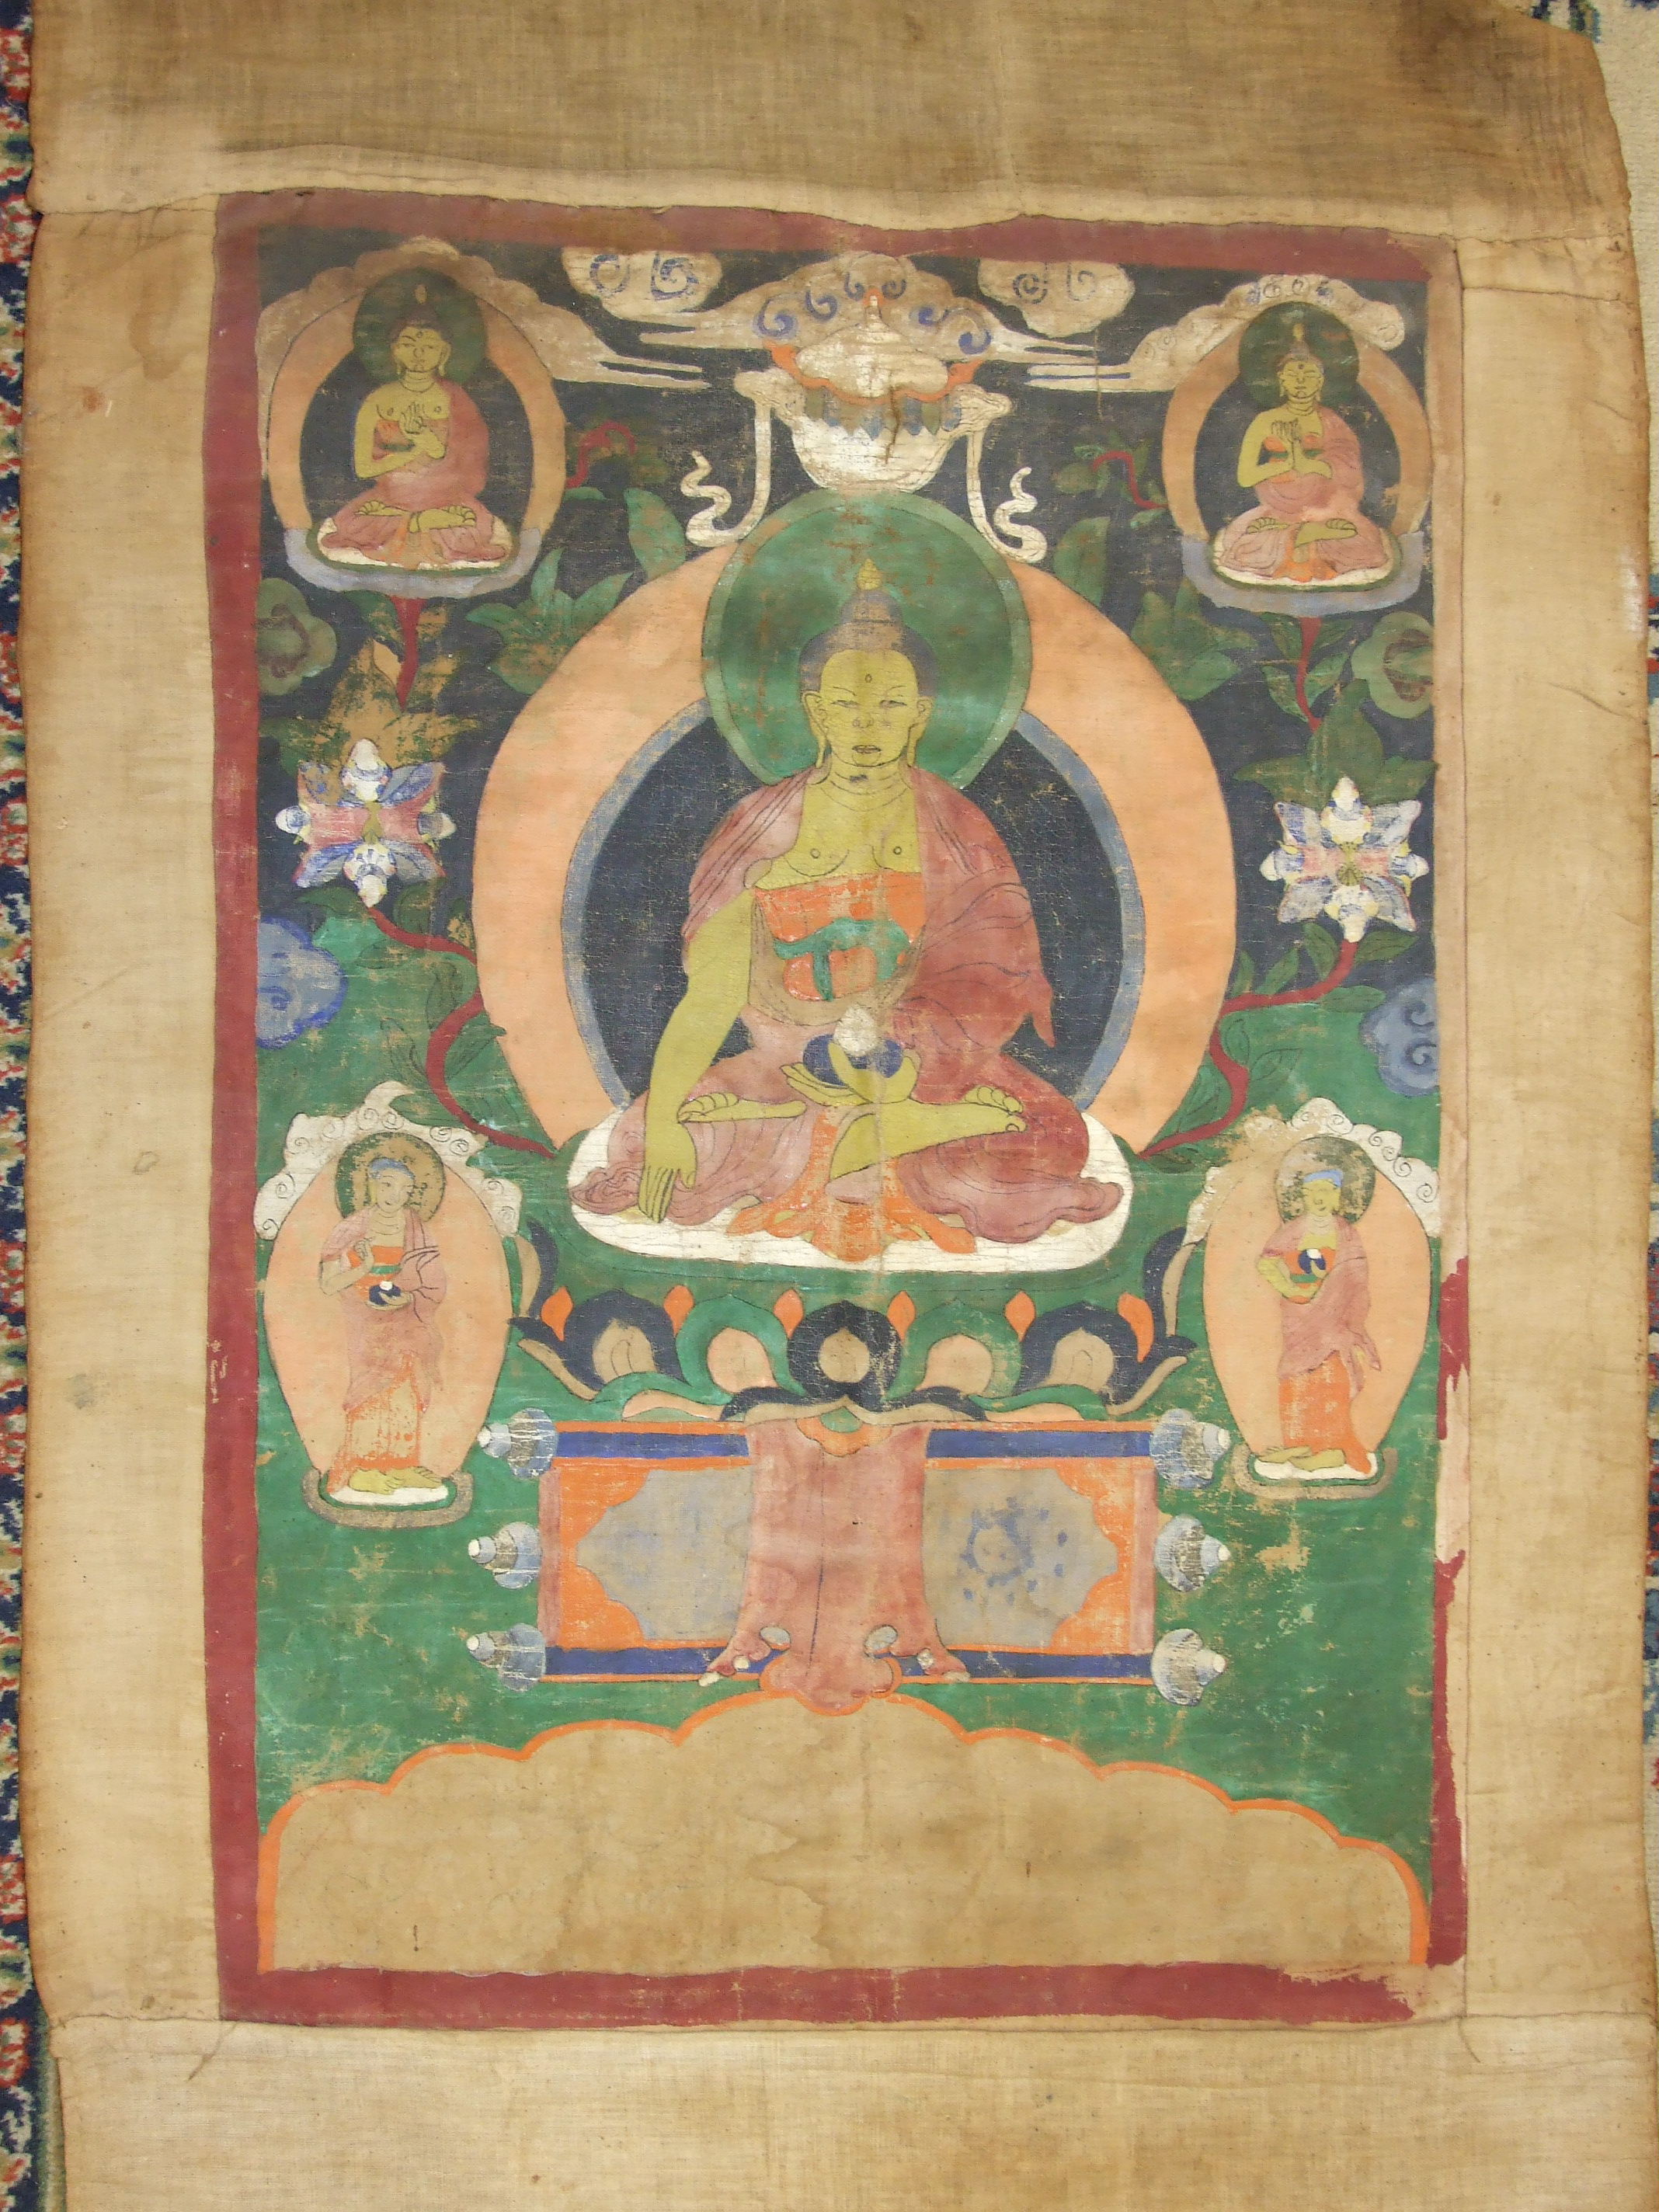 An early-20th century Tibetan painted cloth scroll depicting deities within a tree of life design, - Image 2 of 2